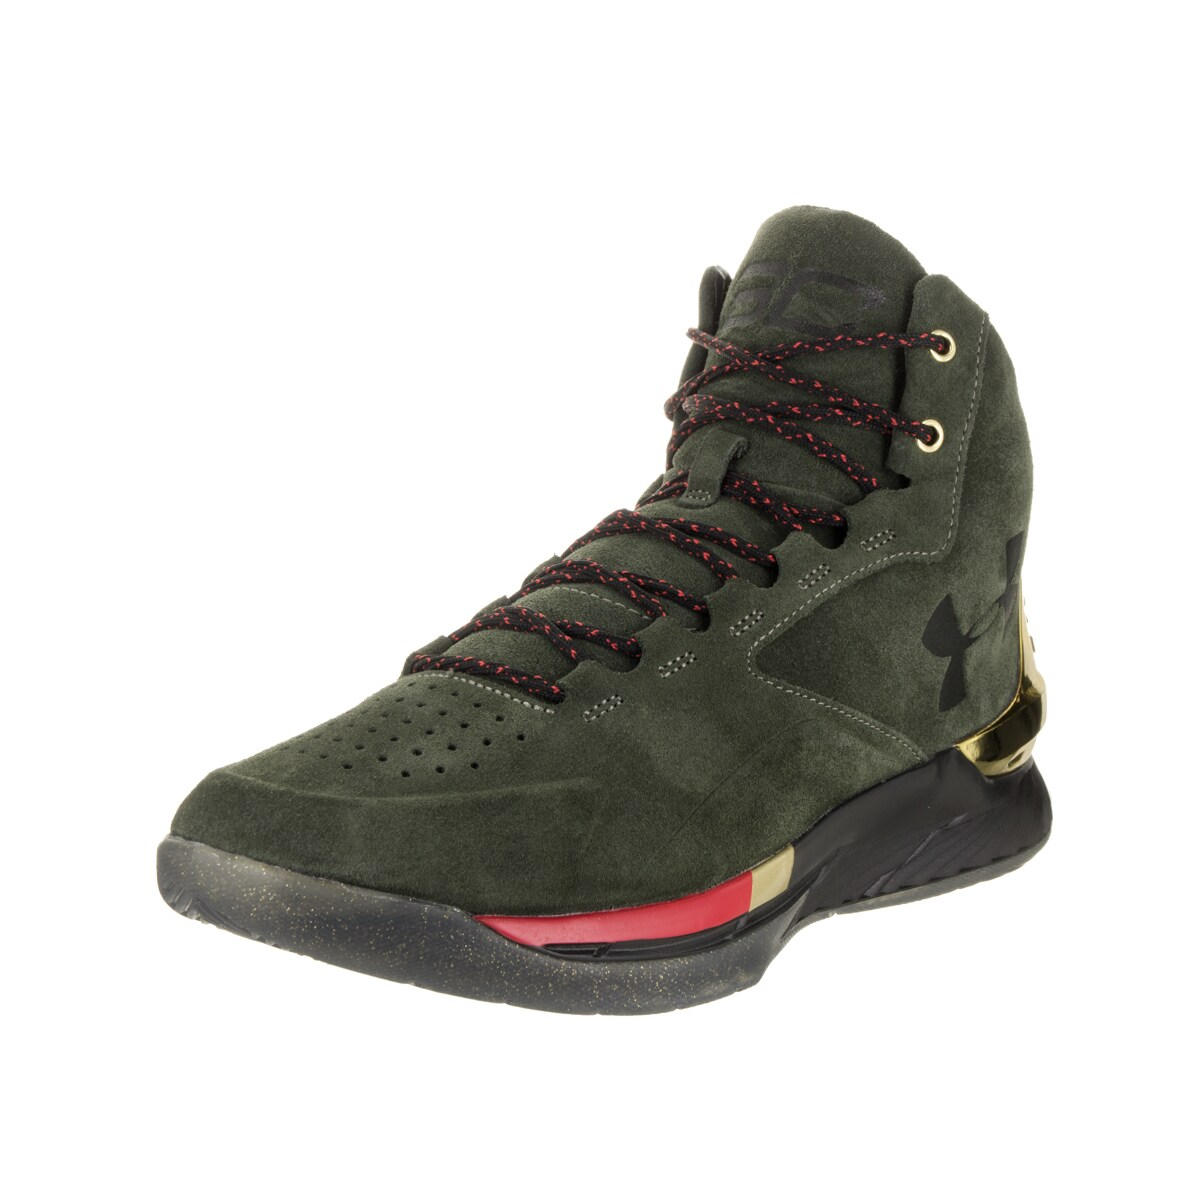 ad432a53784a Shop Under Armour Men s UA Curry 1 Lux Mid Sde Basketball Shoe - Free  Shipping Today - - 13959229